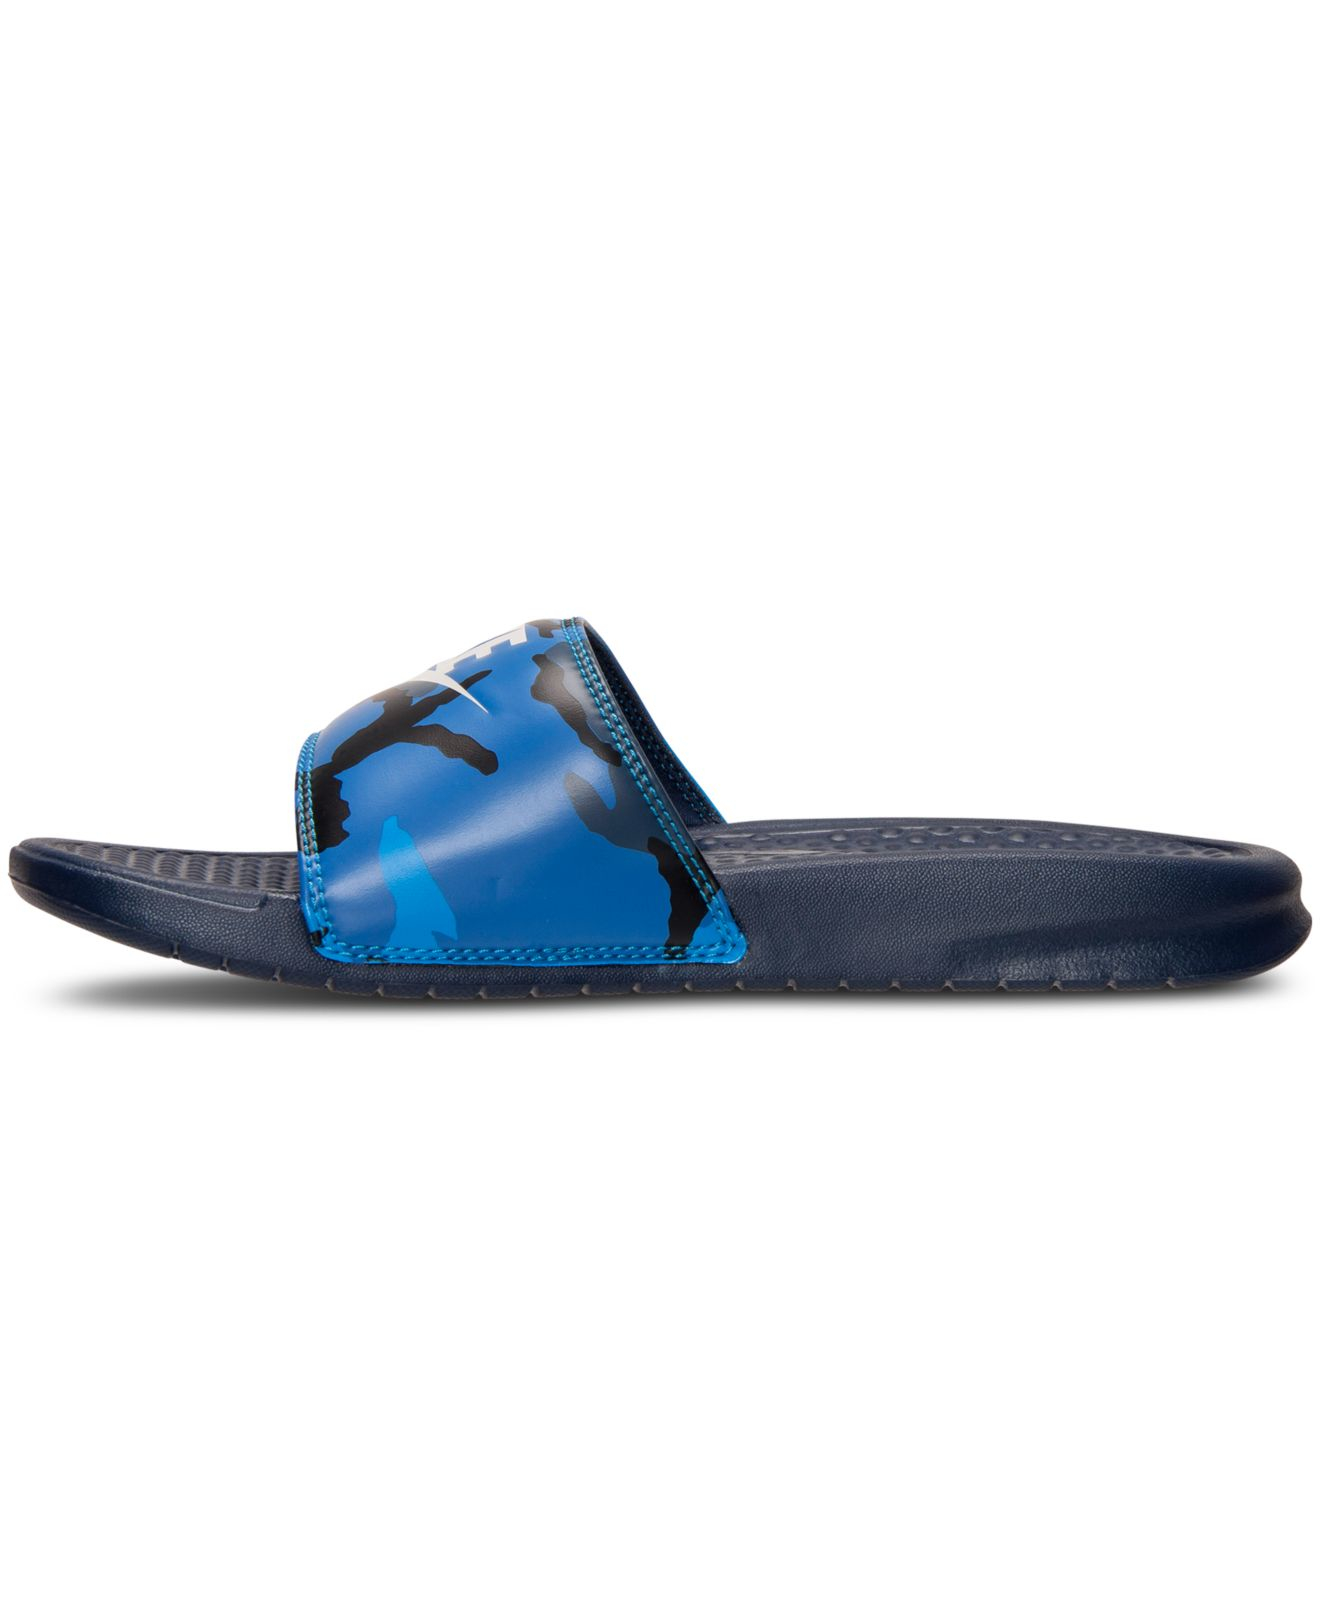 8fe32a6f8e078d Lyst - Nike Men s Benassi Jdi Print Slide Sandals From Finish Line ...